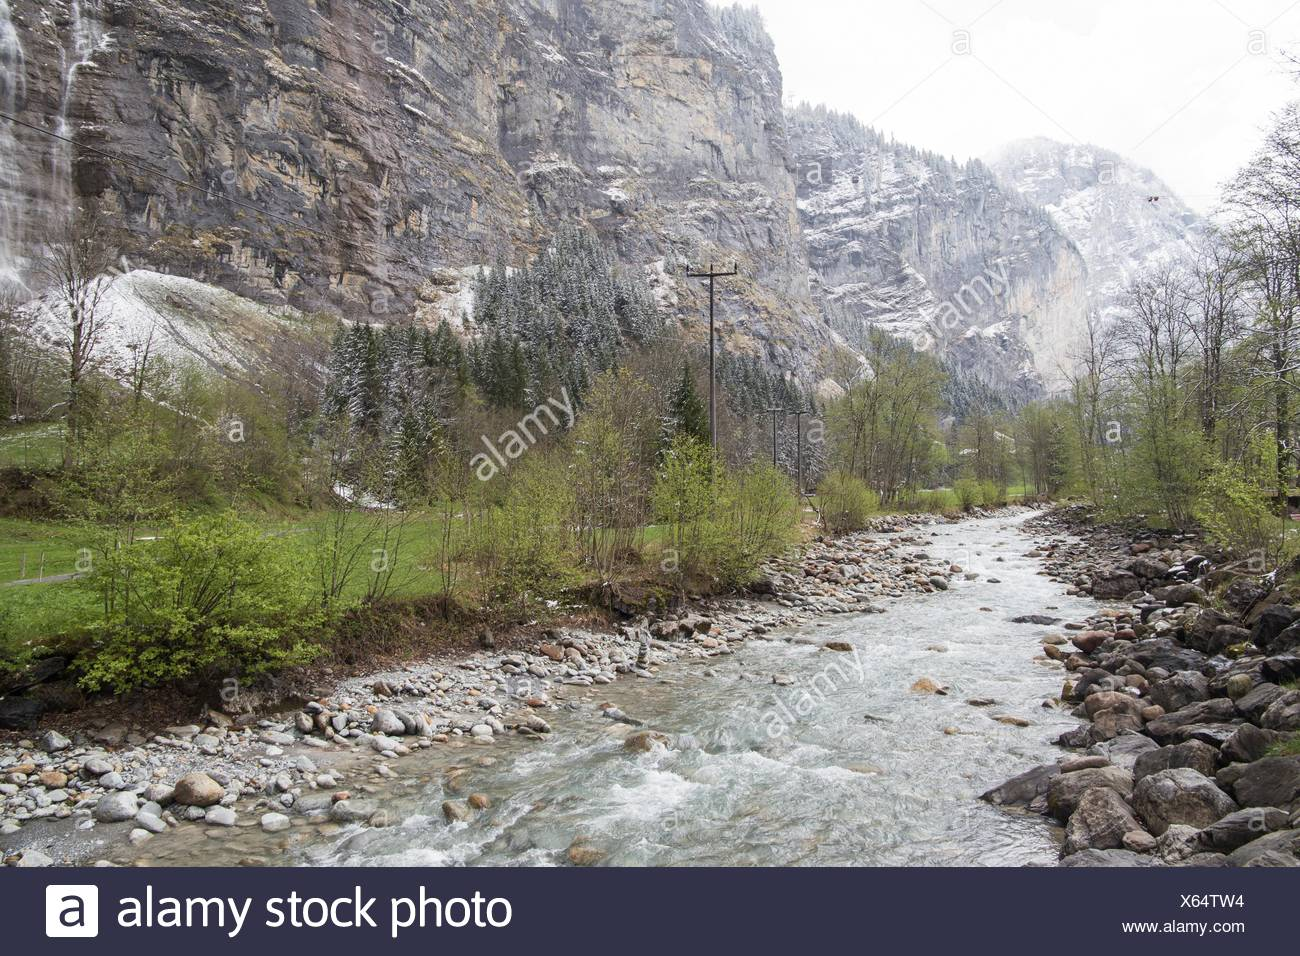 Landscape in Lauterbrunnen Junfrau region Berner Oberland Switzerland. Stock Photo